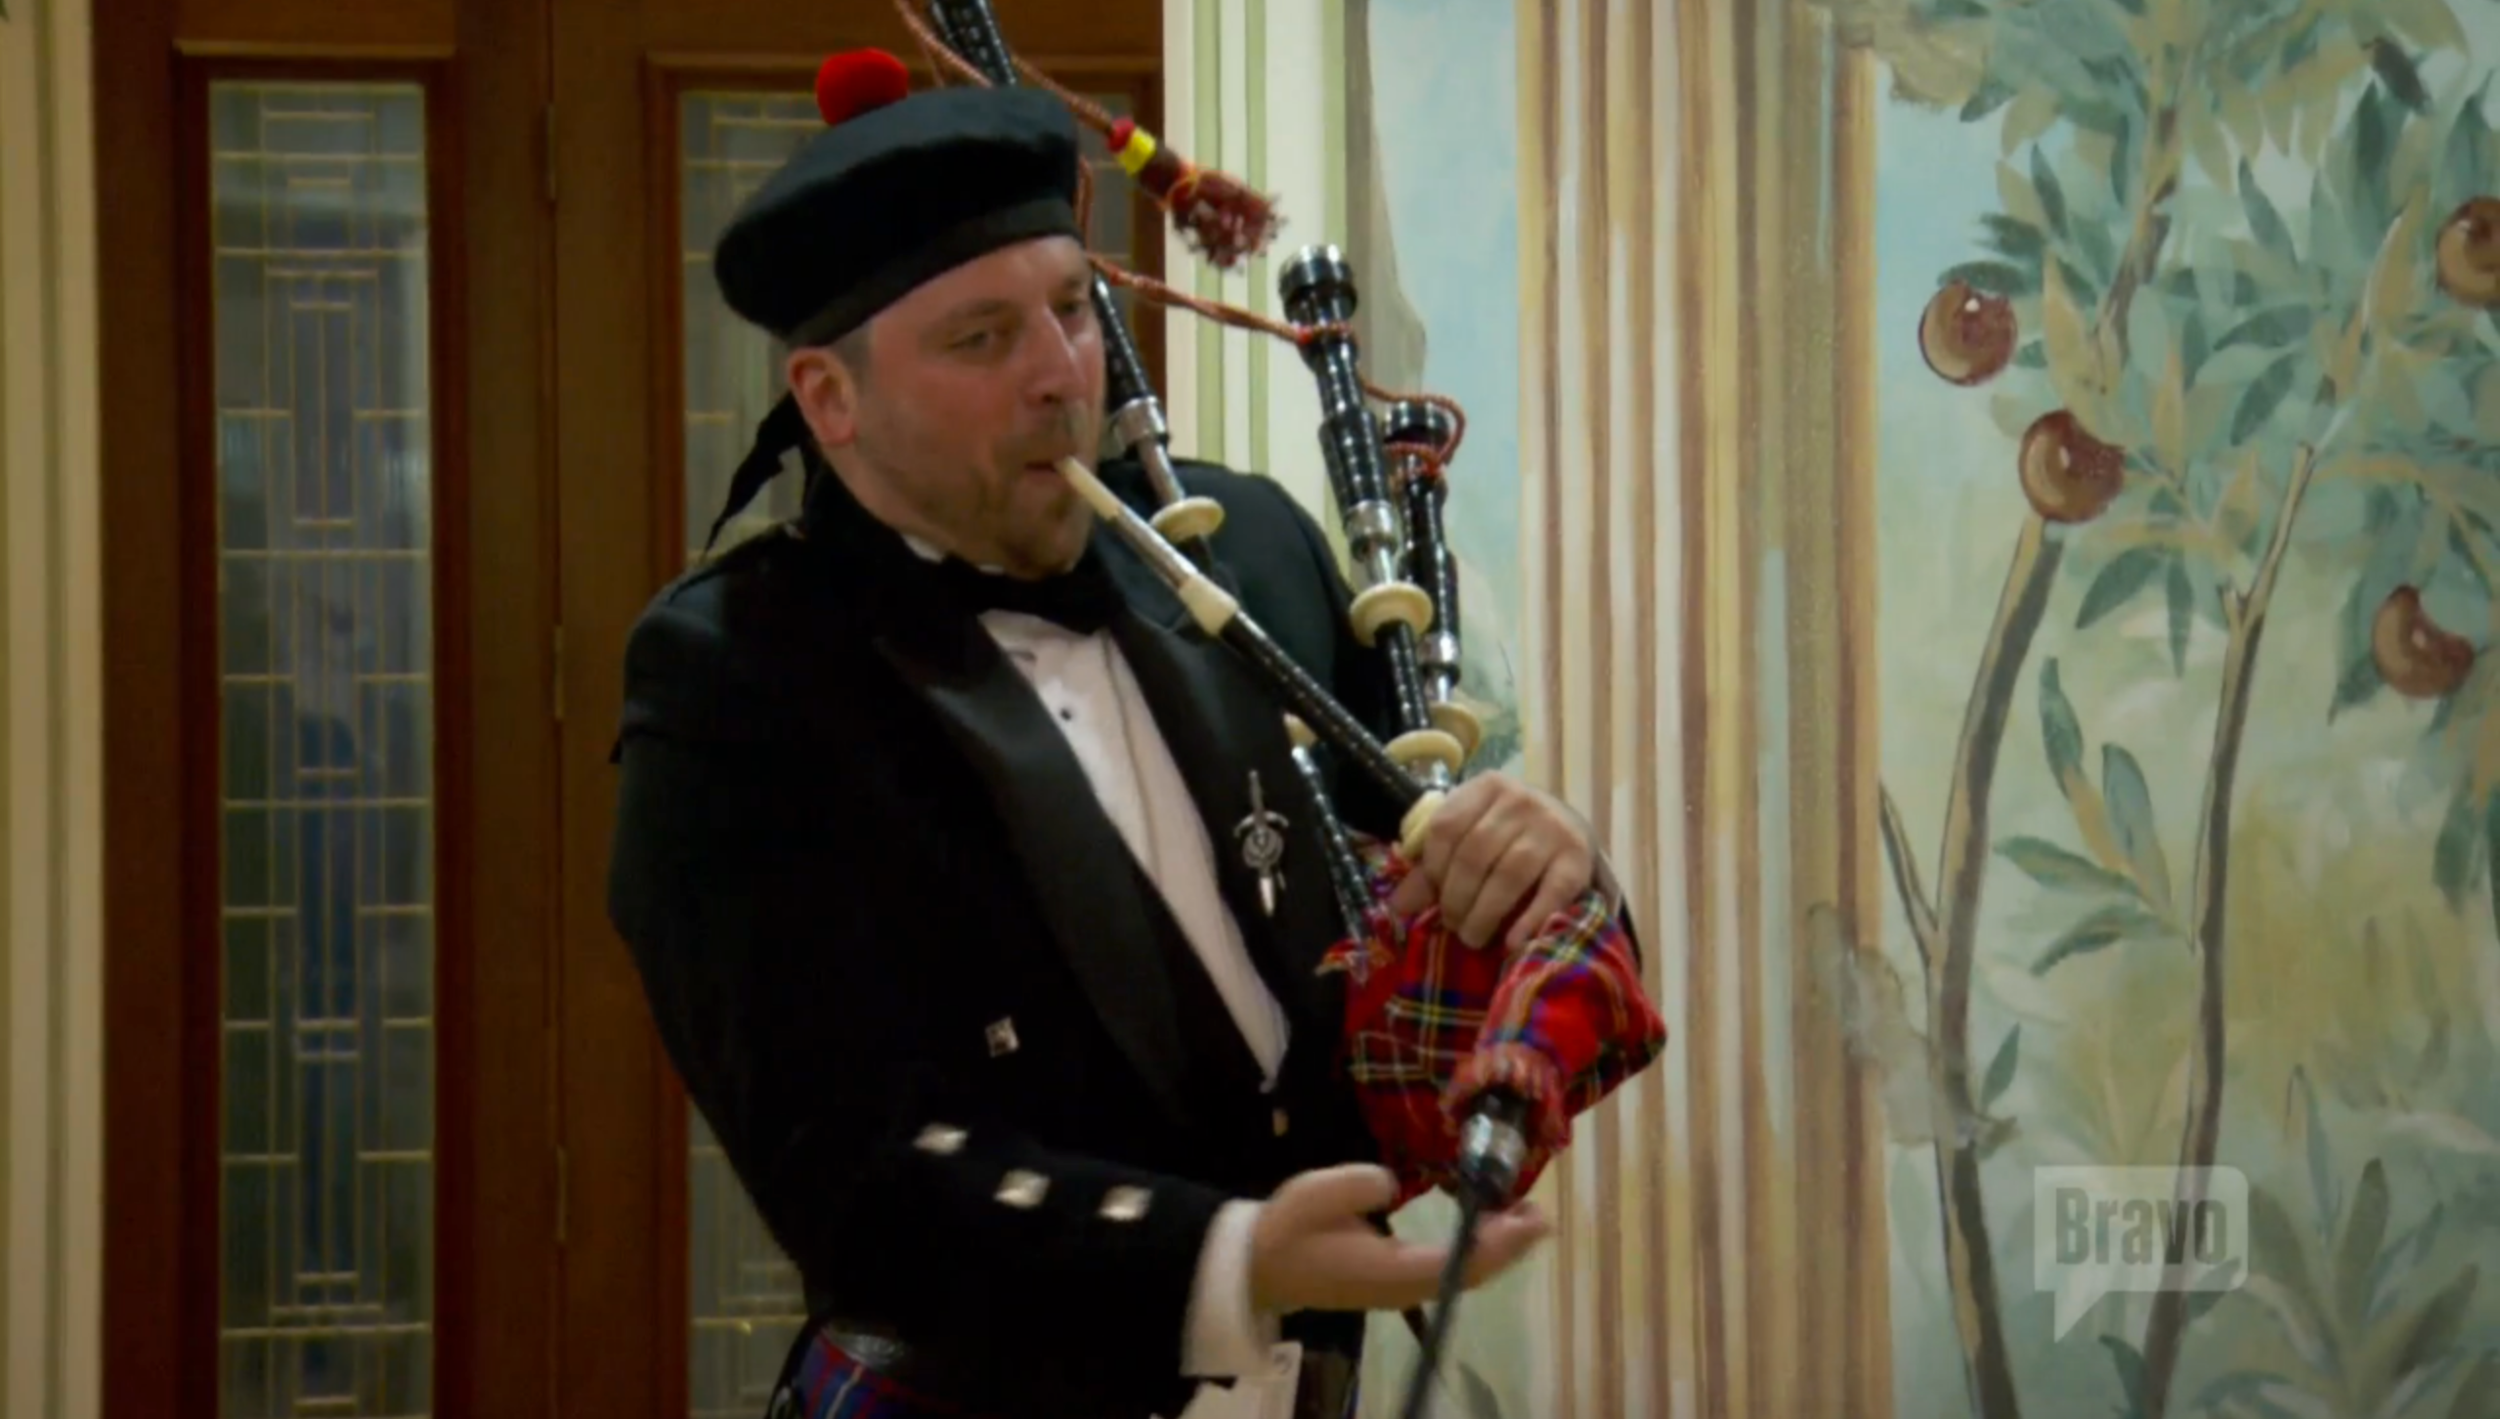 manzod-christopher-bagpipes